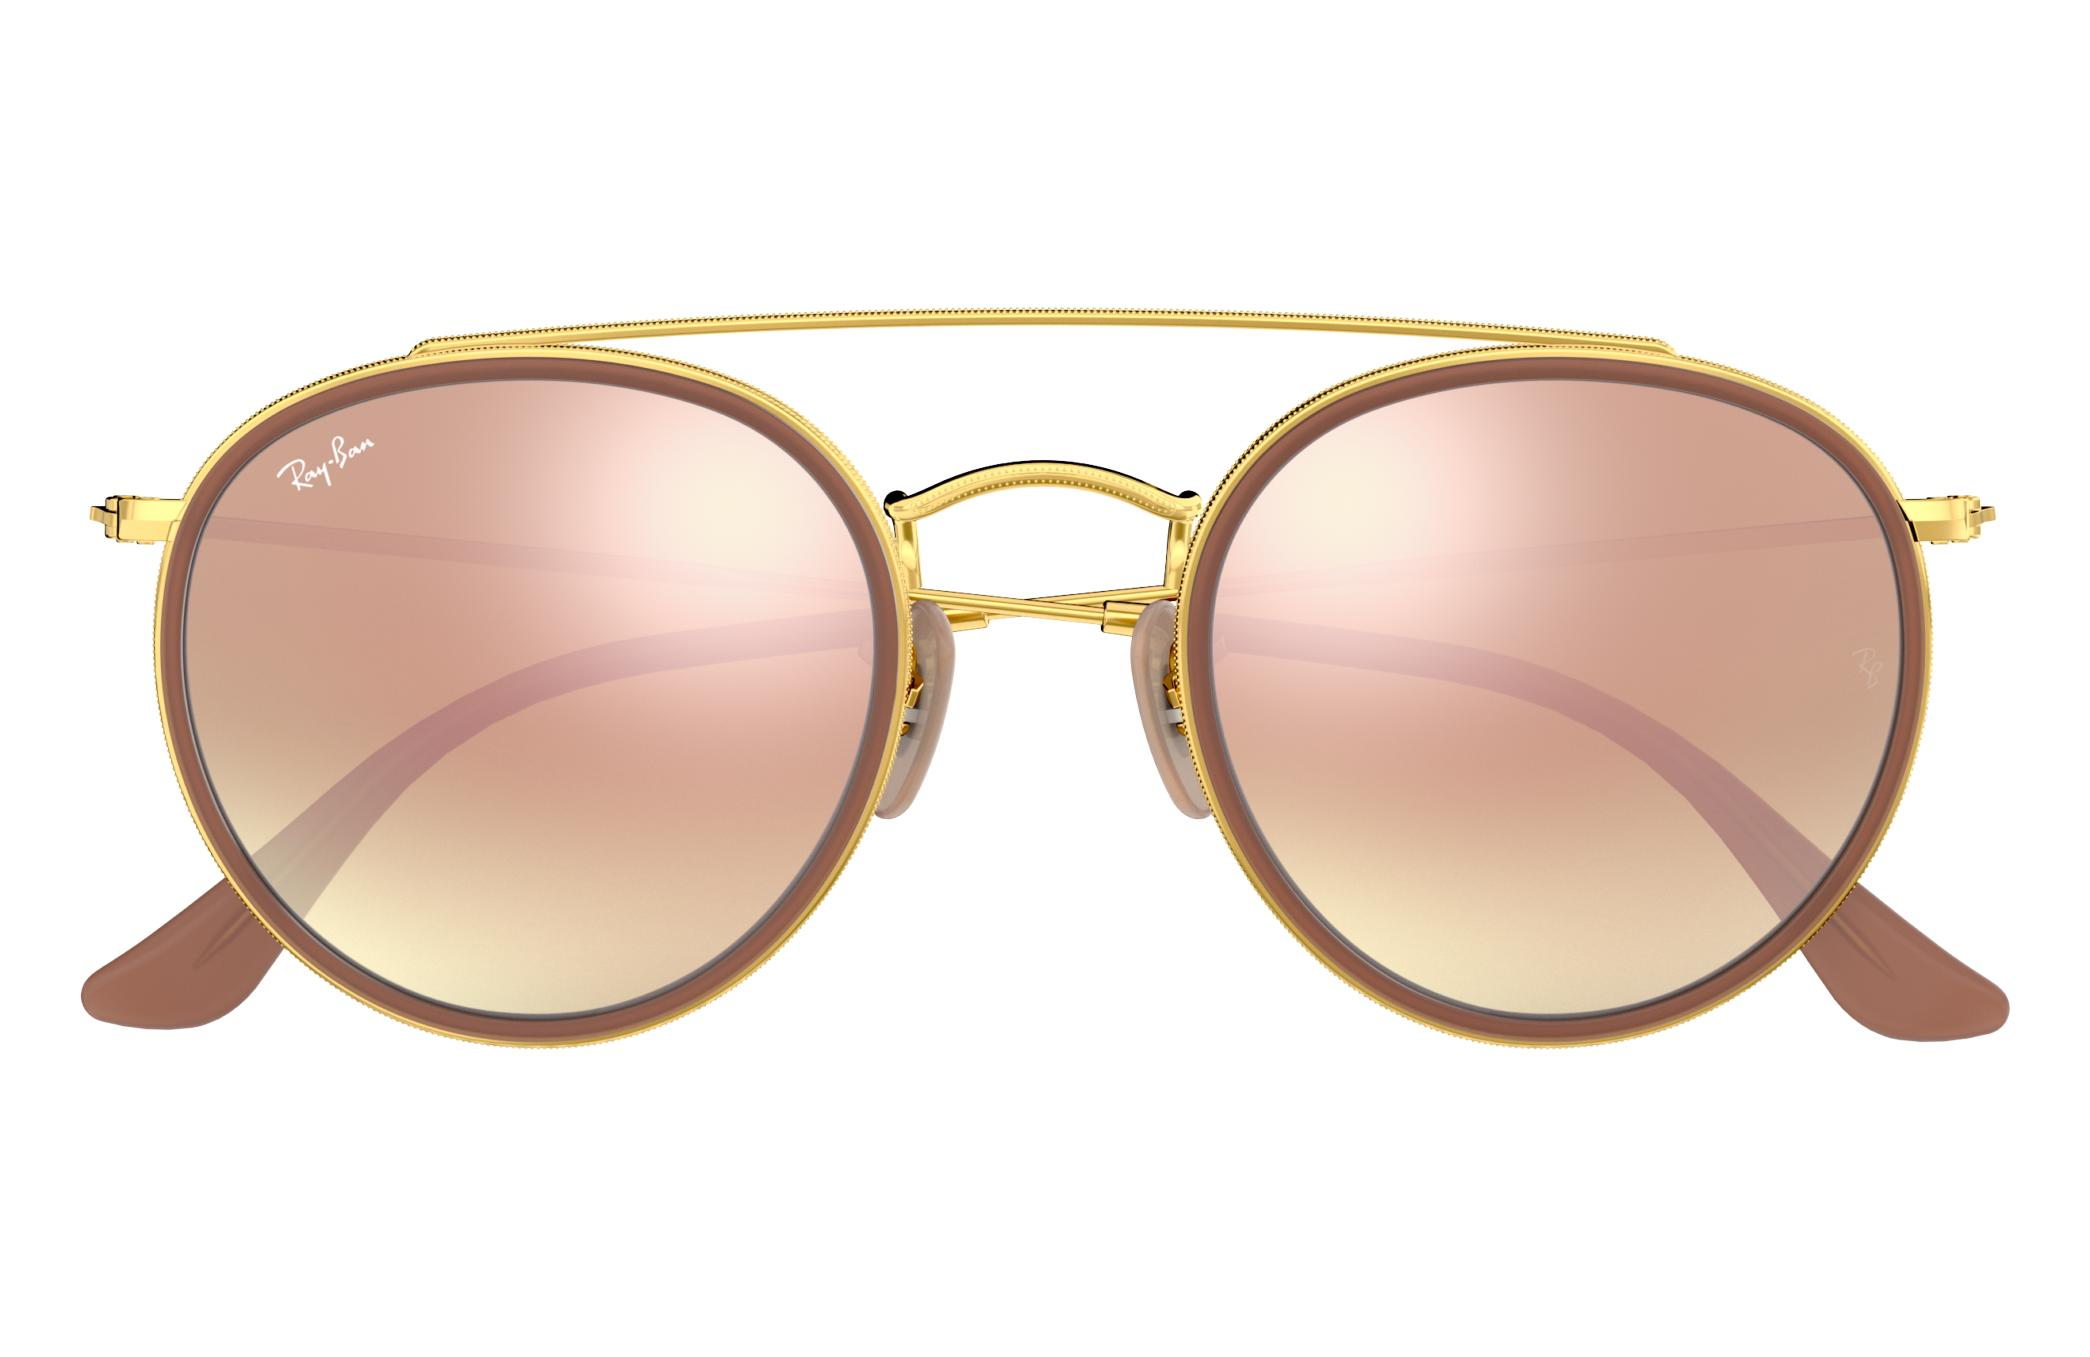 bbeb2b67690a3 Ray-Ban Round Double Bridge RB3647N Ouro - Metal - Lentes Cobre ...